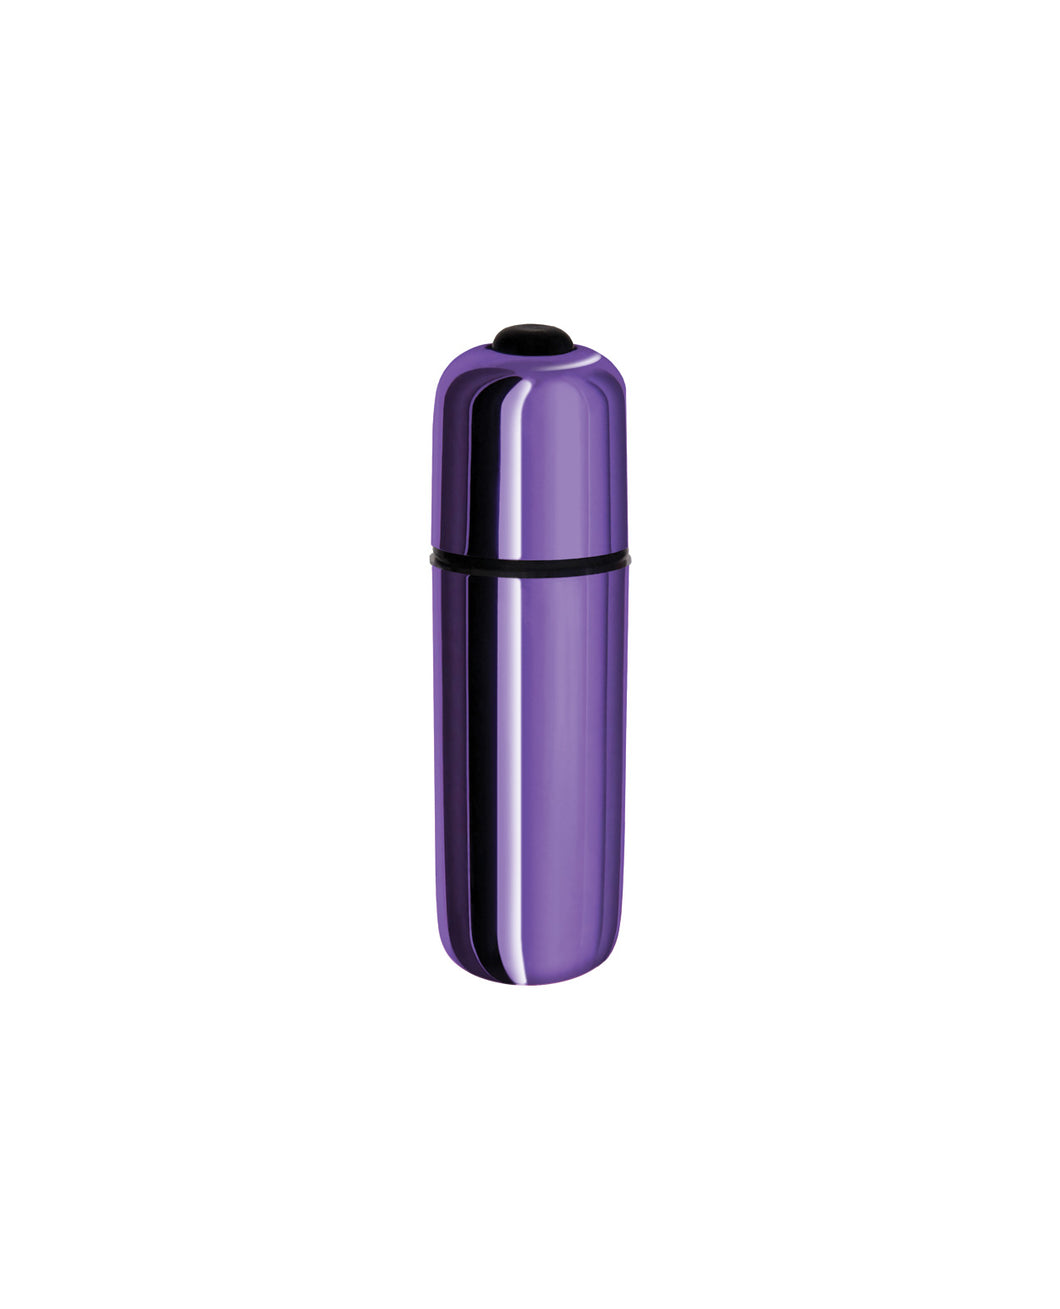 Erotic Toy Company Chrome Classics Bullet - 7 Speed Purple